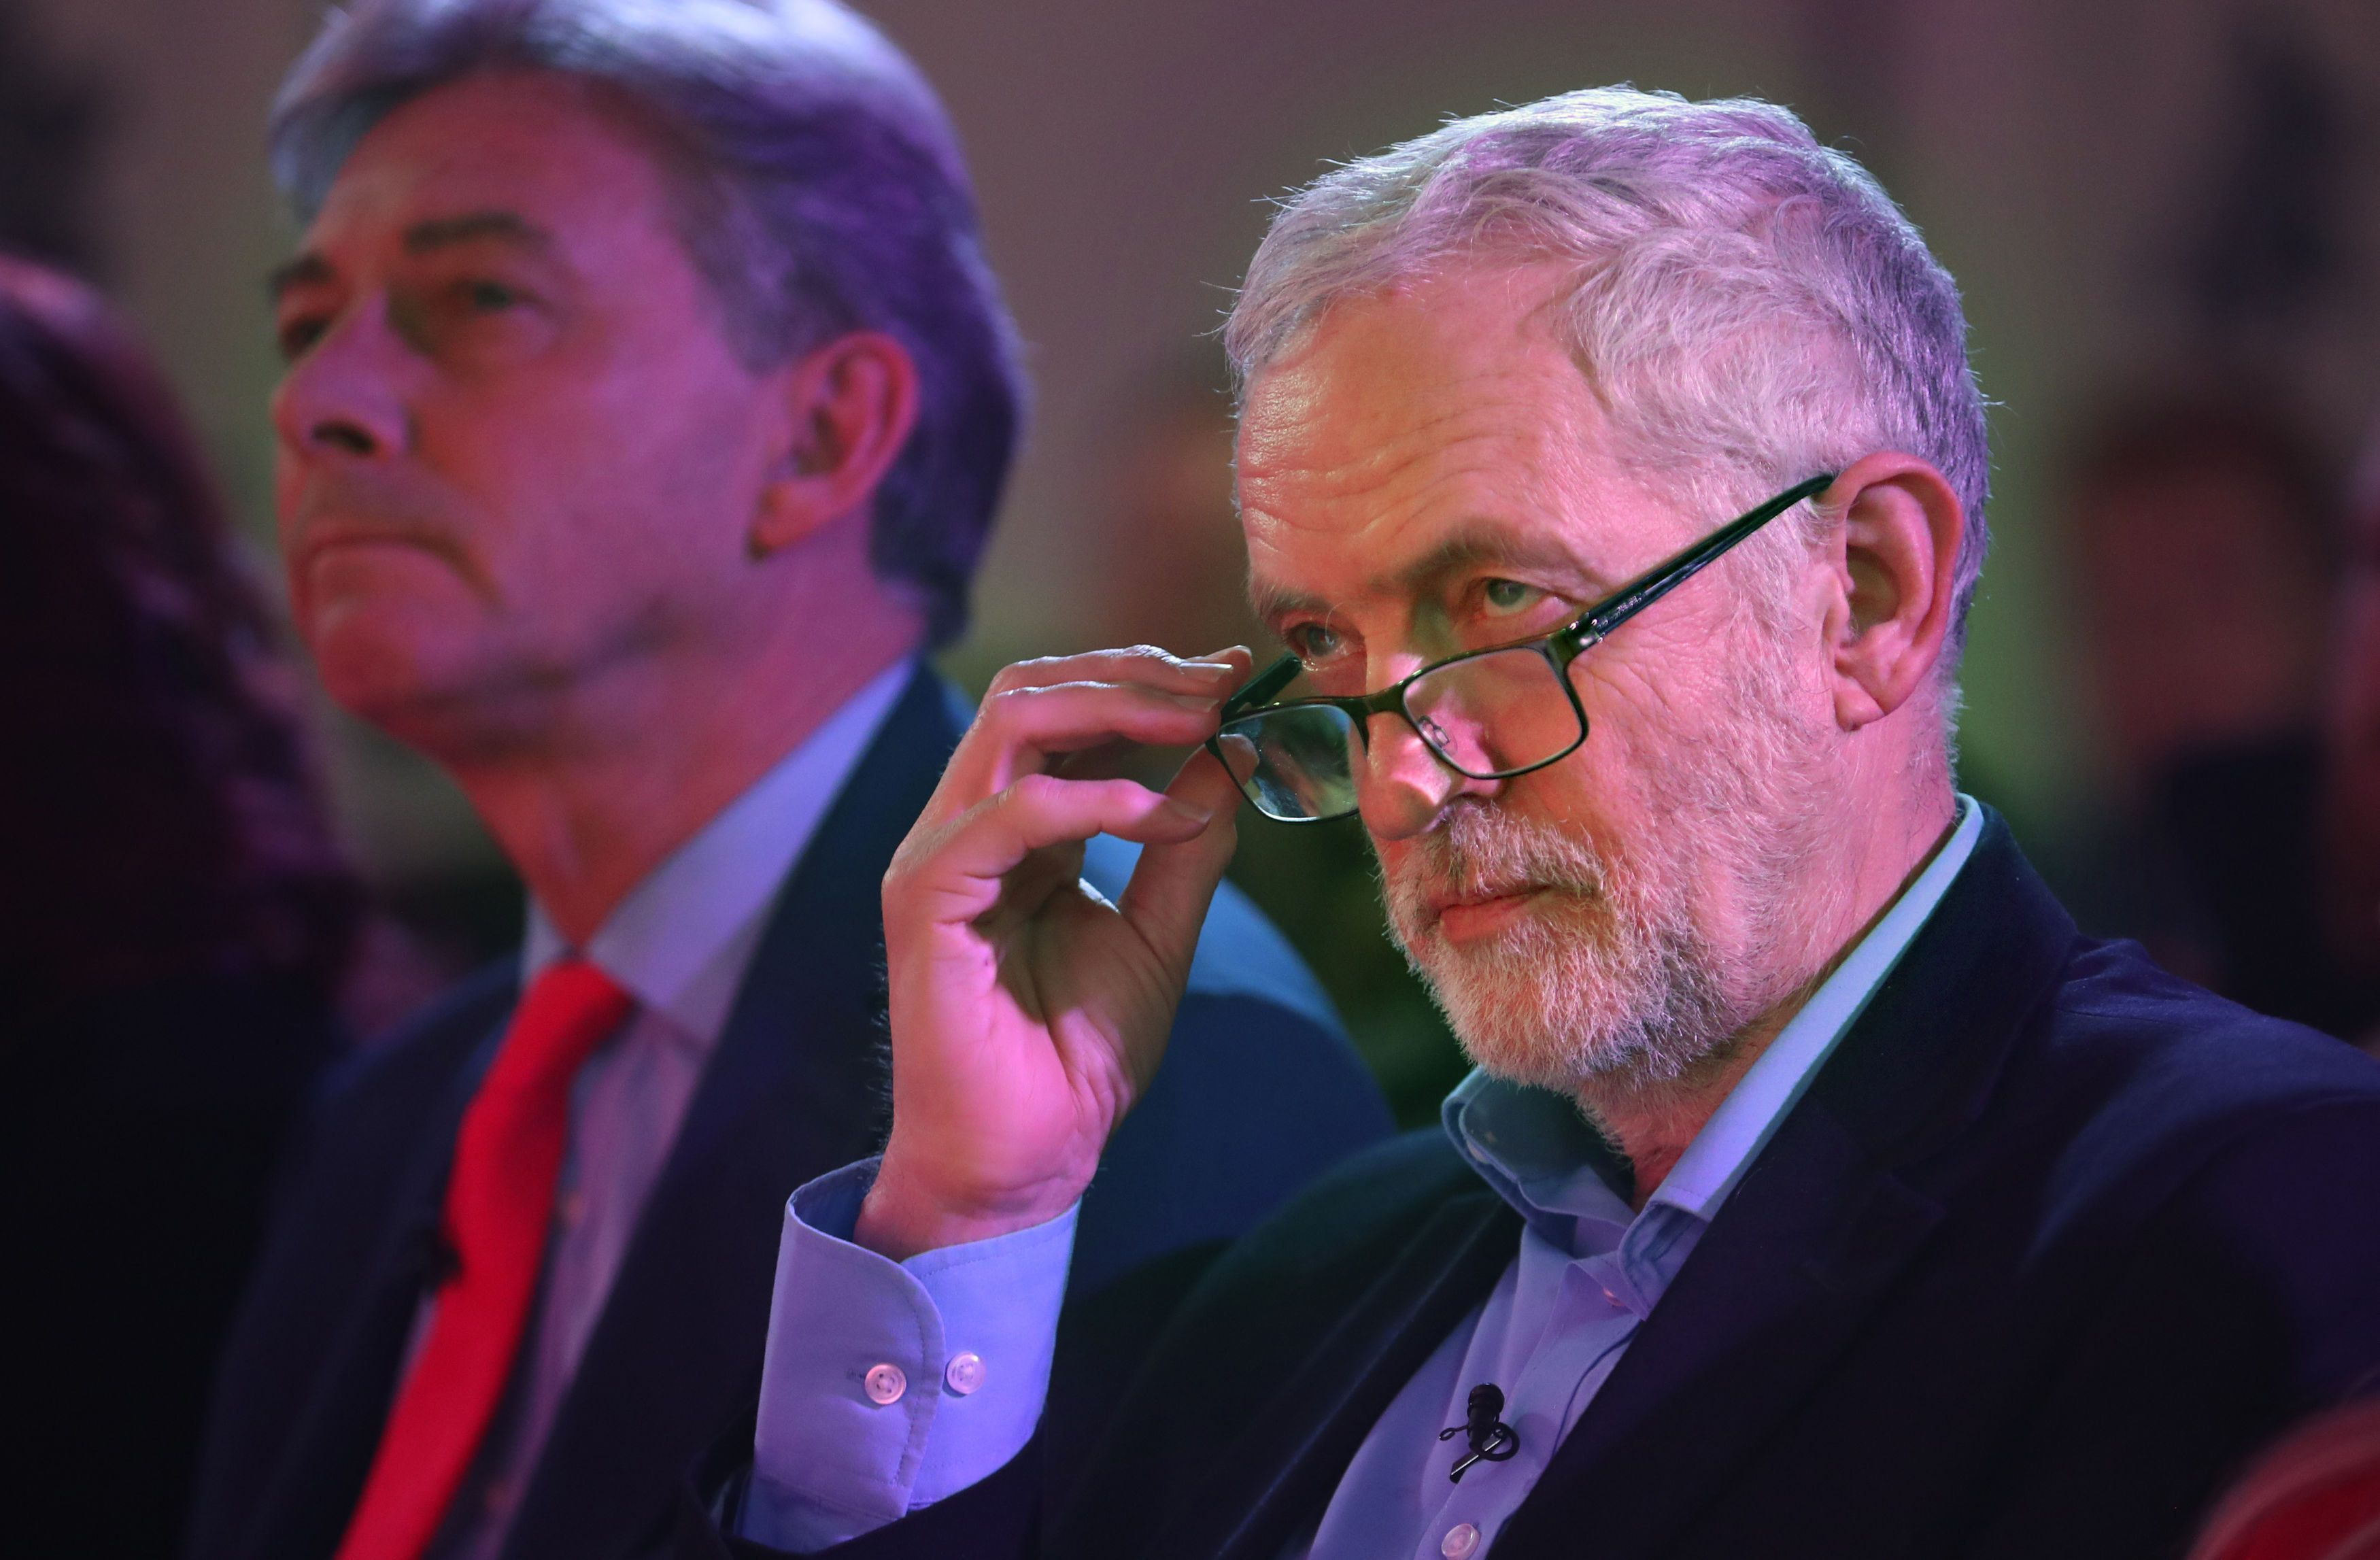 Labour MP: Corbyn's views on immigration make Farage smile